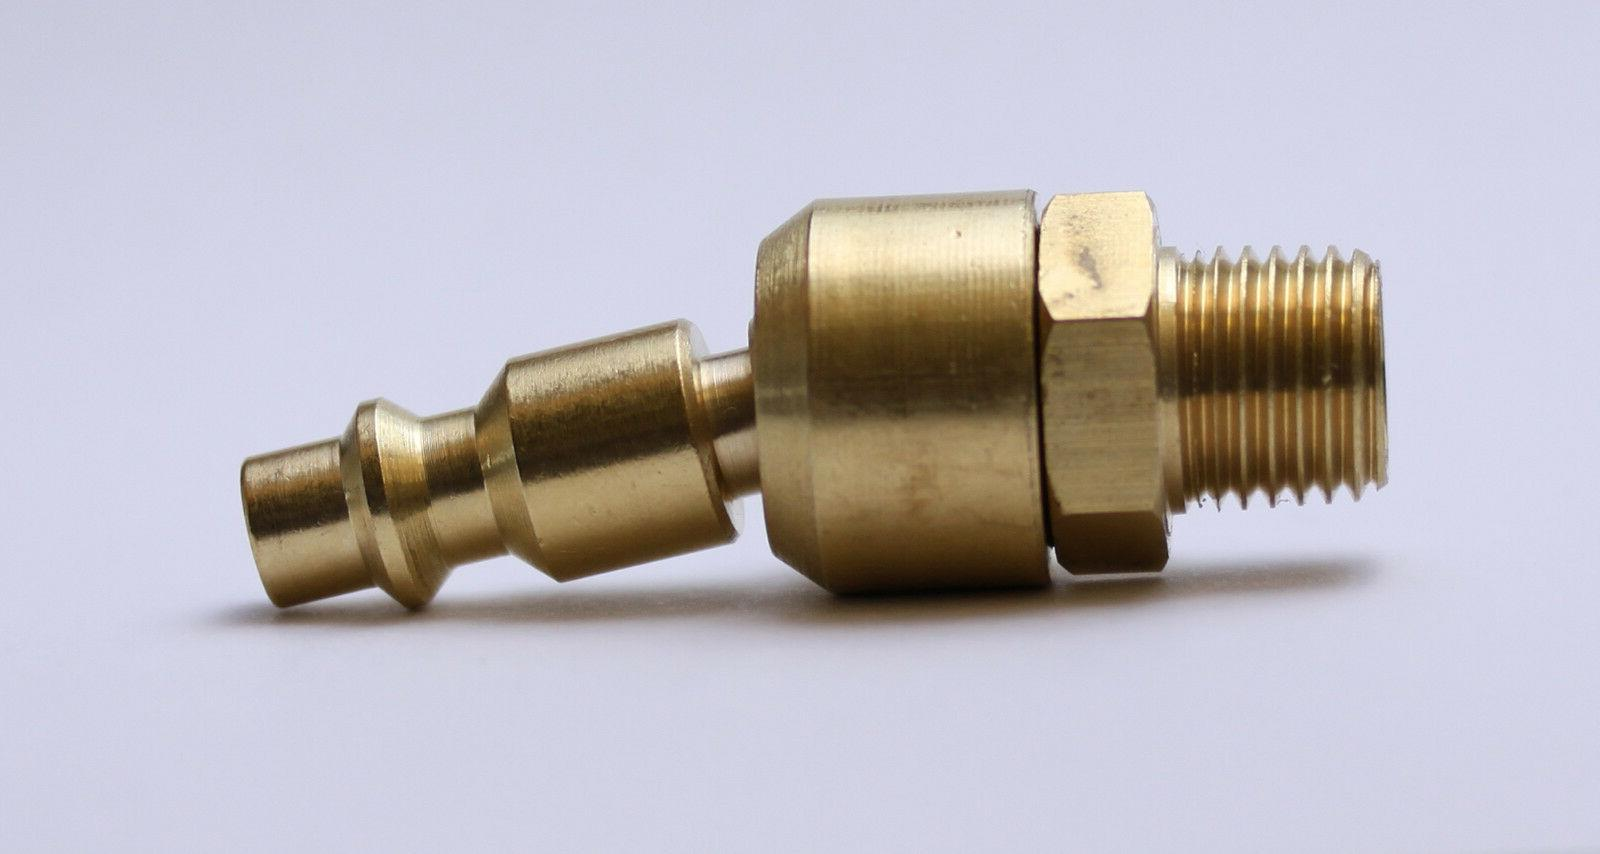 Uffy Industrial Swivel Connect NPT Male Tool M Fitting